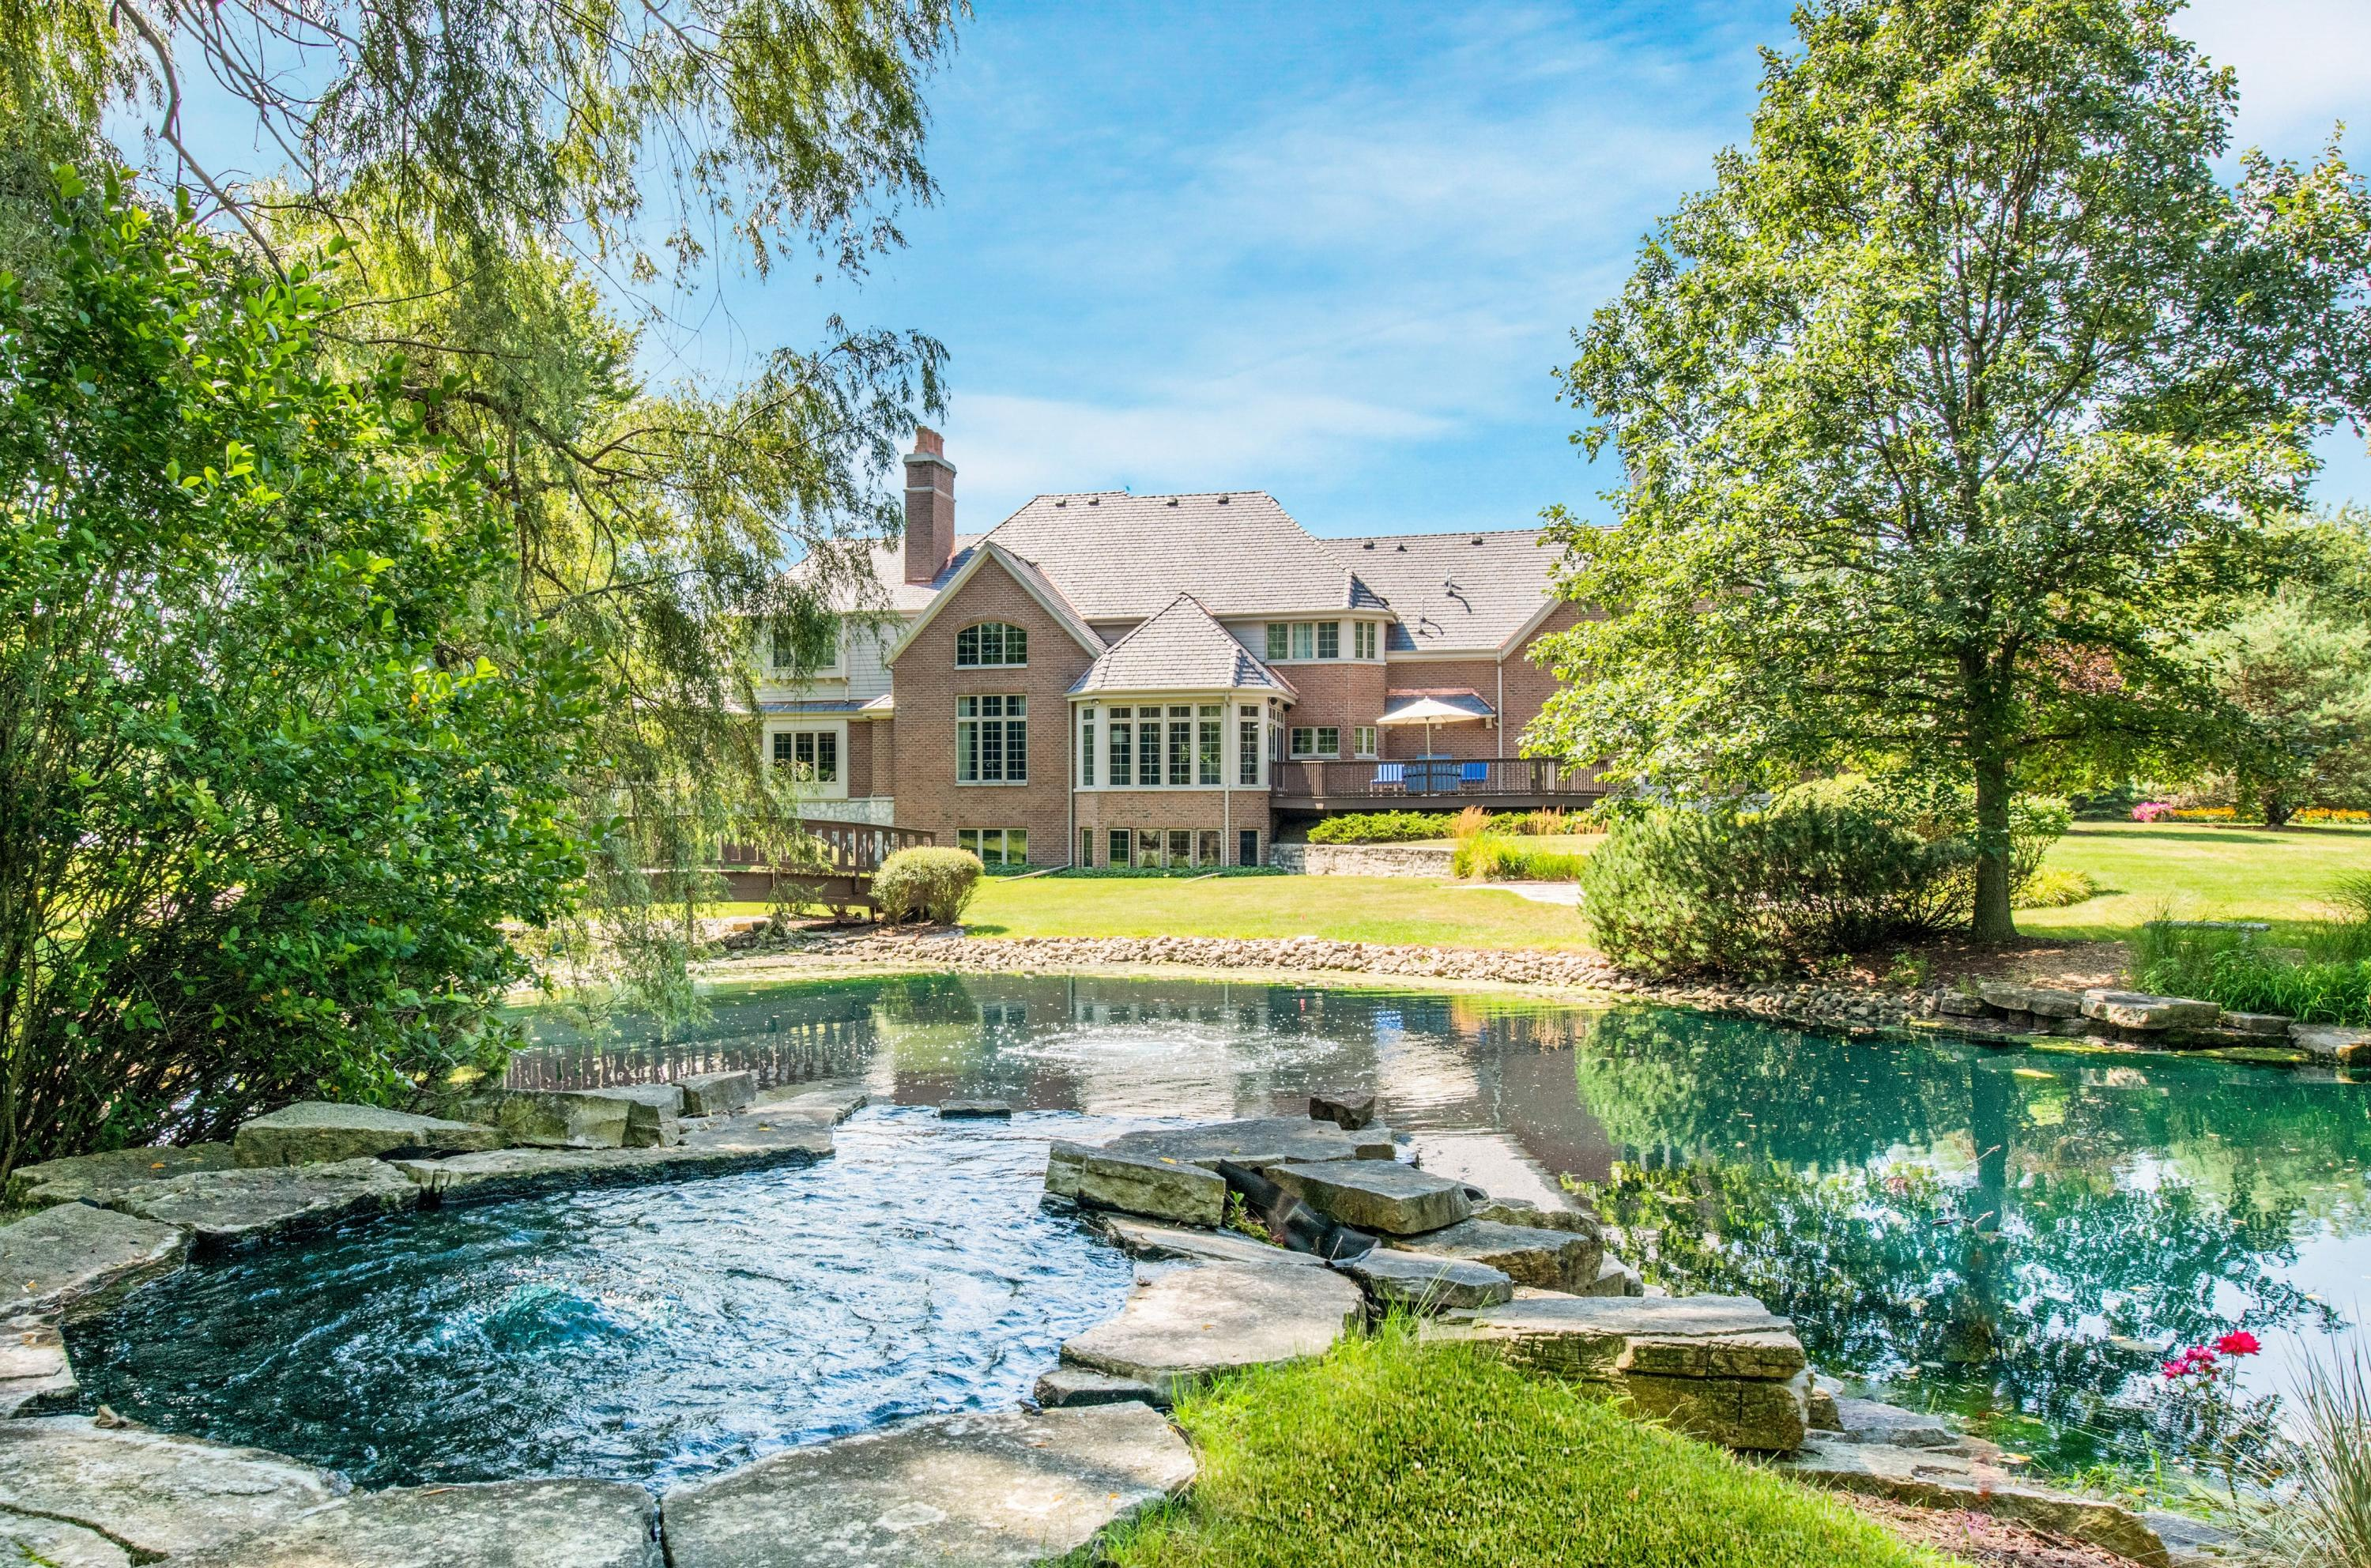 9724 N Columbia Dr, Mequon, WI 53092